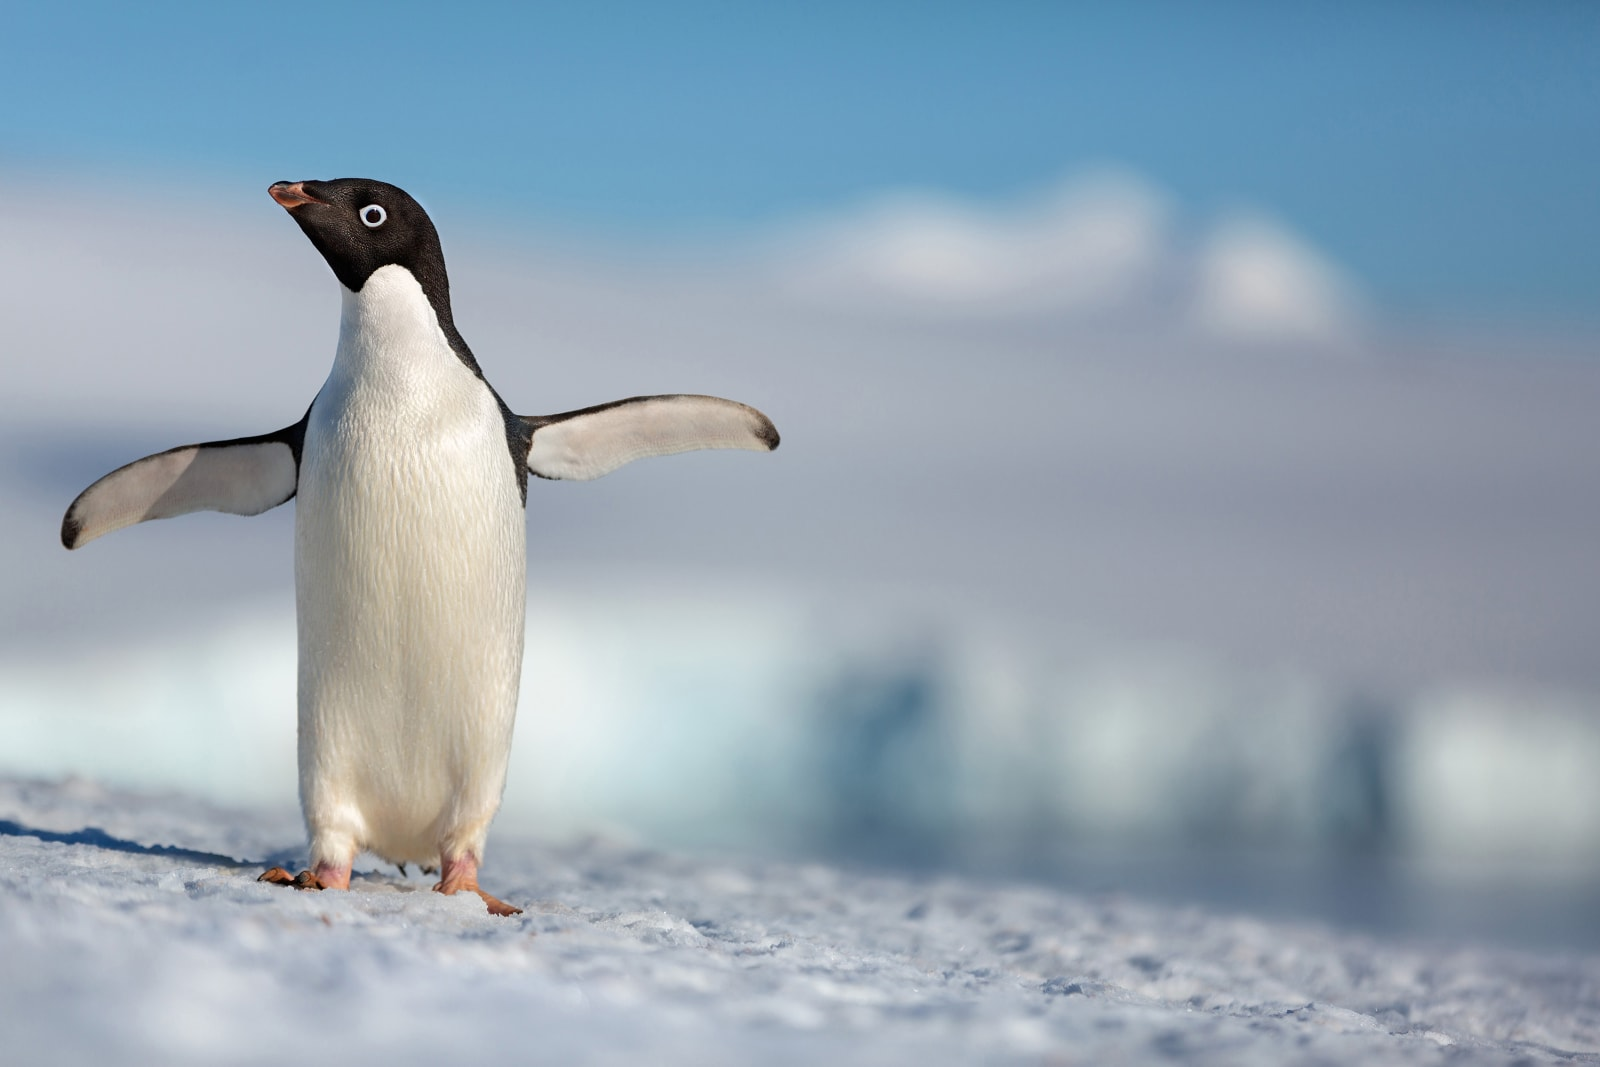 See Penguins in IMAX at AMC